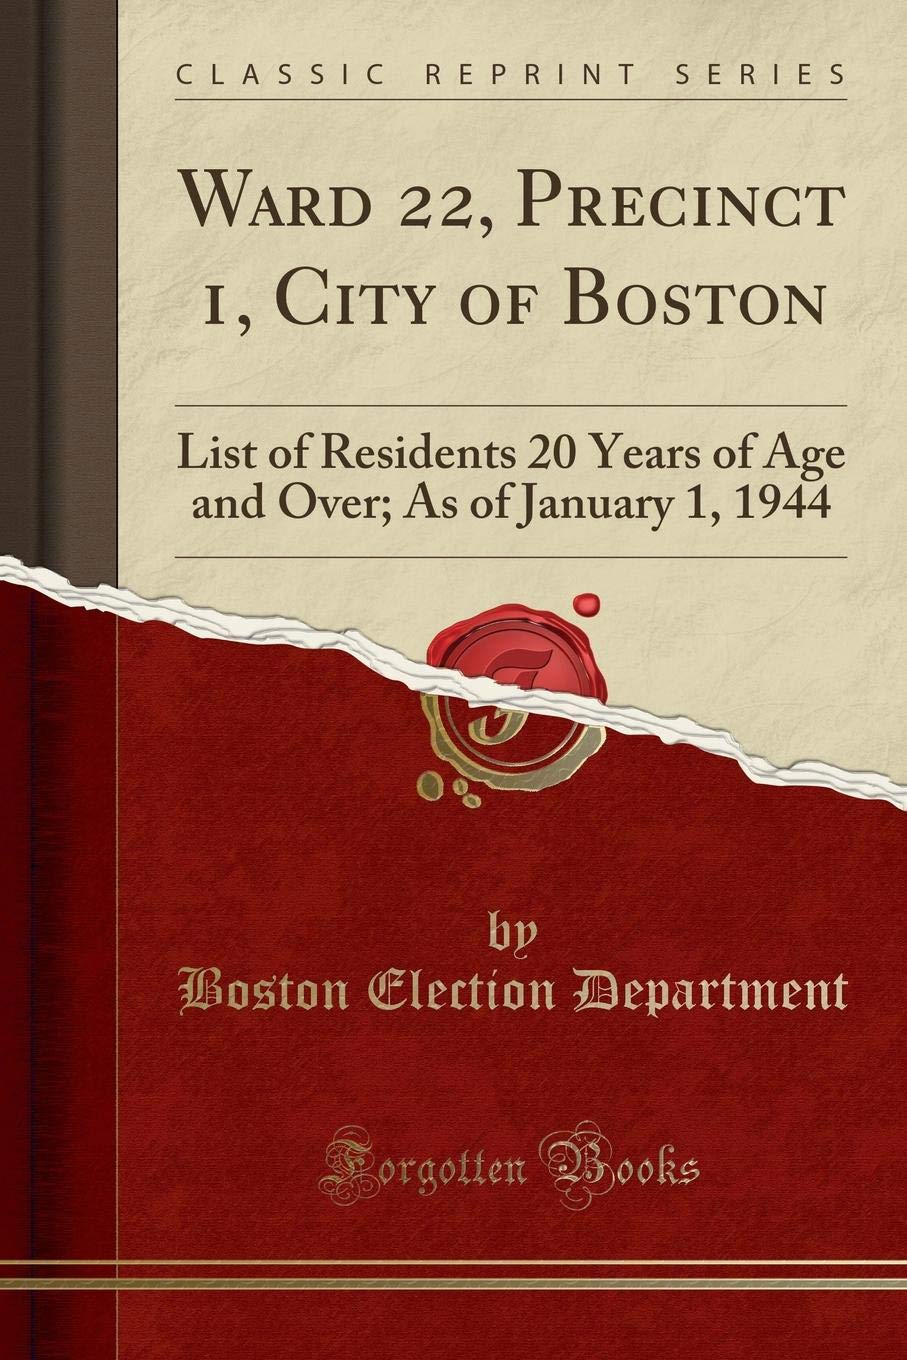 Ward 22, Precinct 1, City of Boston: List of Residents 20 Years of Age and Over; As of January 1, 1944 (Classic Reprint) PDF